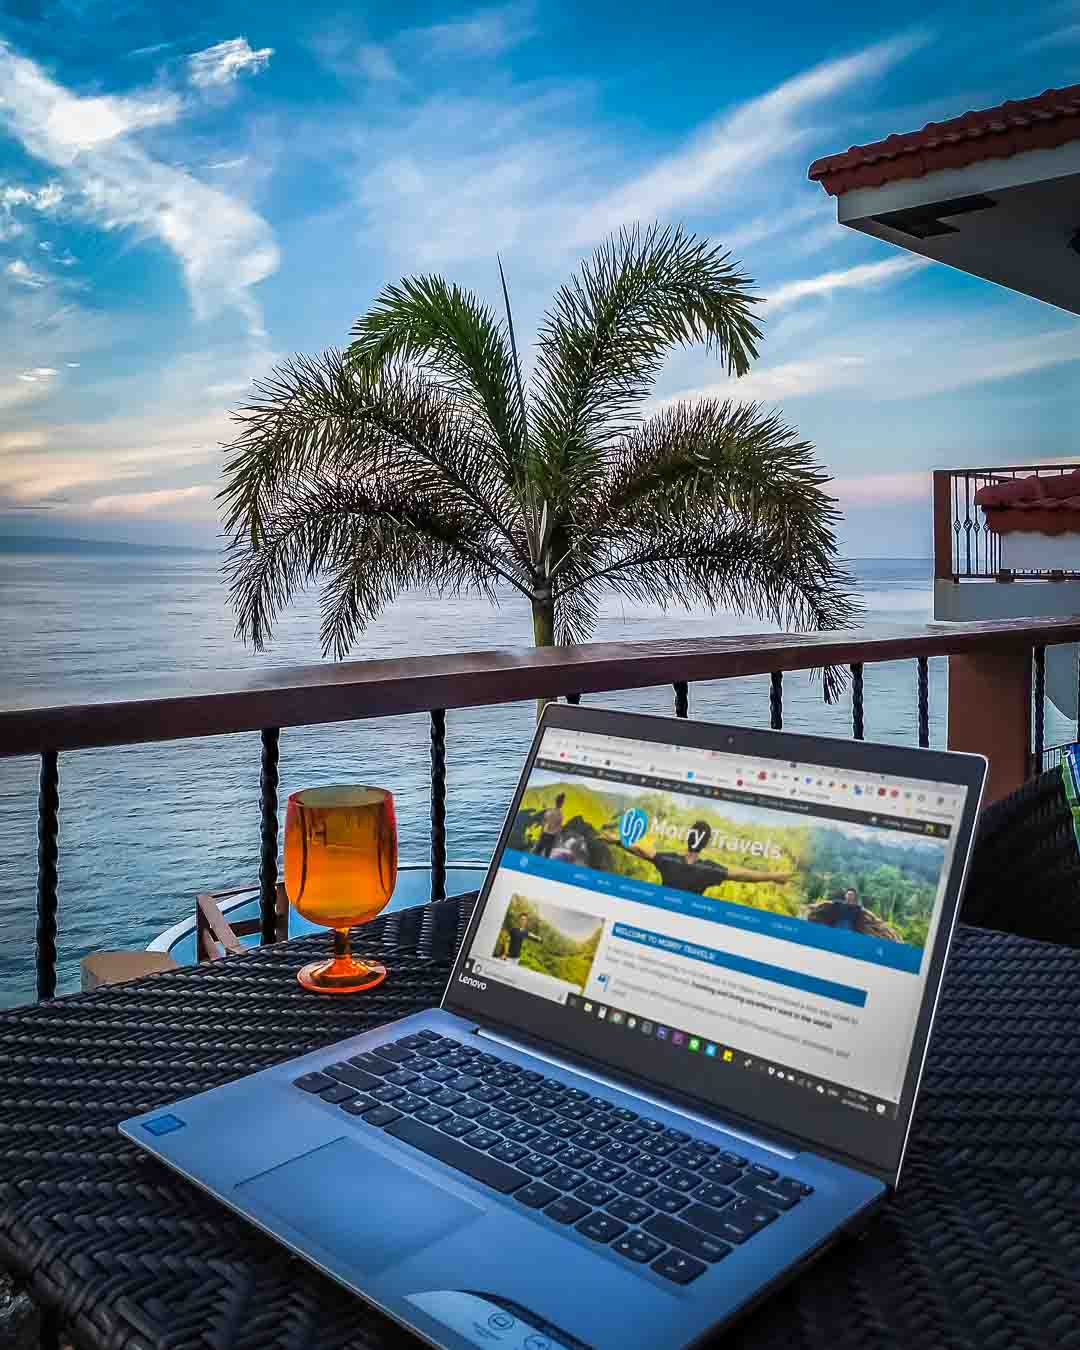 Digital Nomad Dream - Asian-American Solo Travel & Lifestyle | Laptop Ocean Beach | Morry Travels